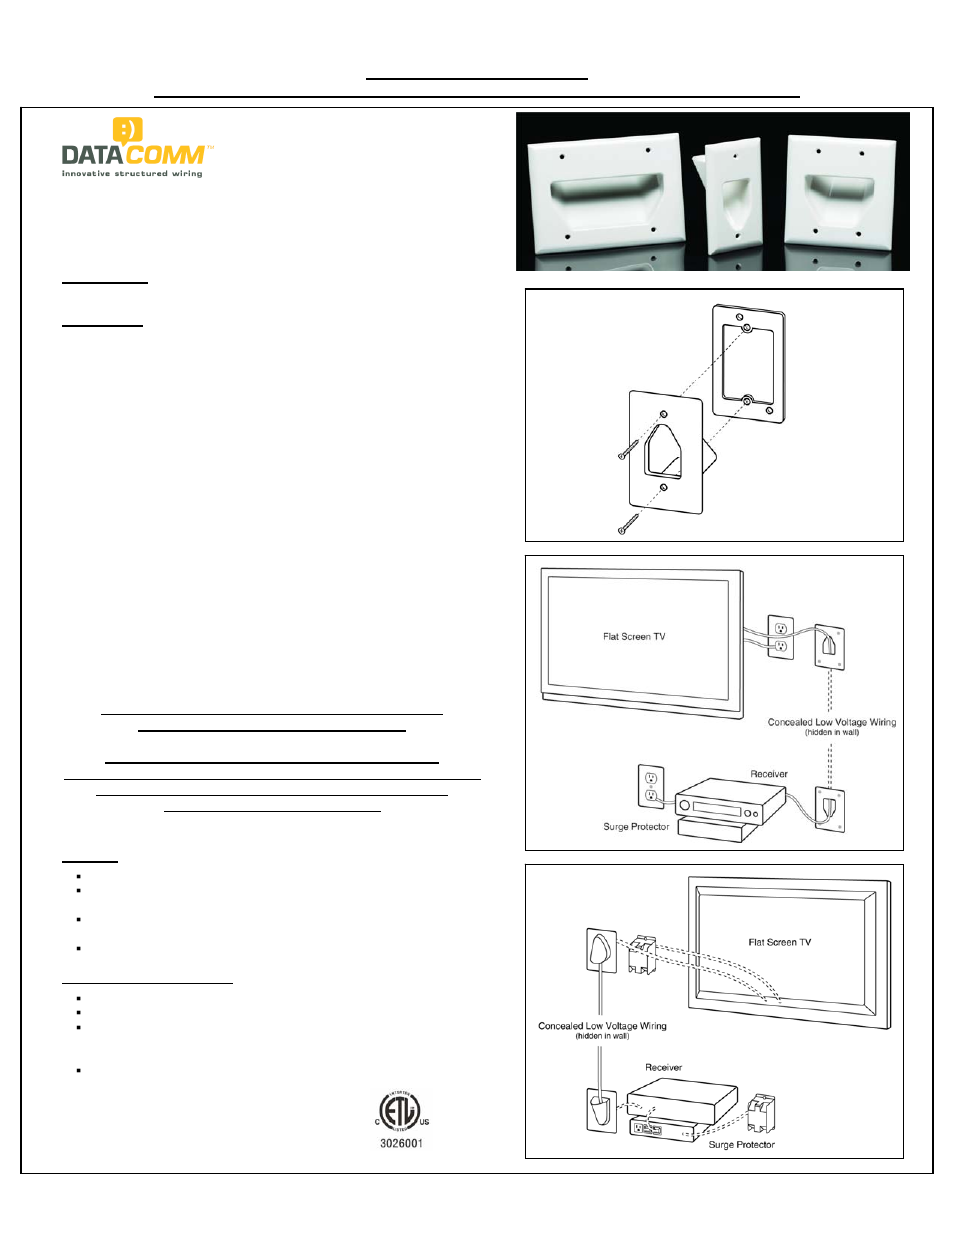 Datacomm 45 0003 Recessed Low Voltage Cable Plates User Manual 1 Electrical Wiring Inside Walls Page Also For 0002 0001